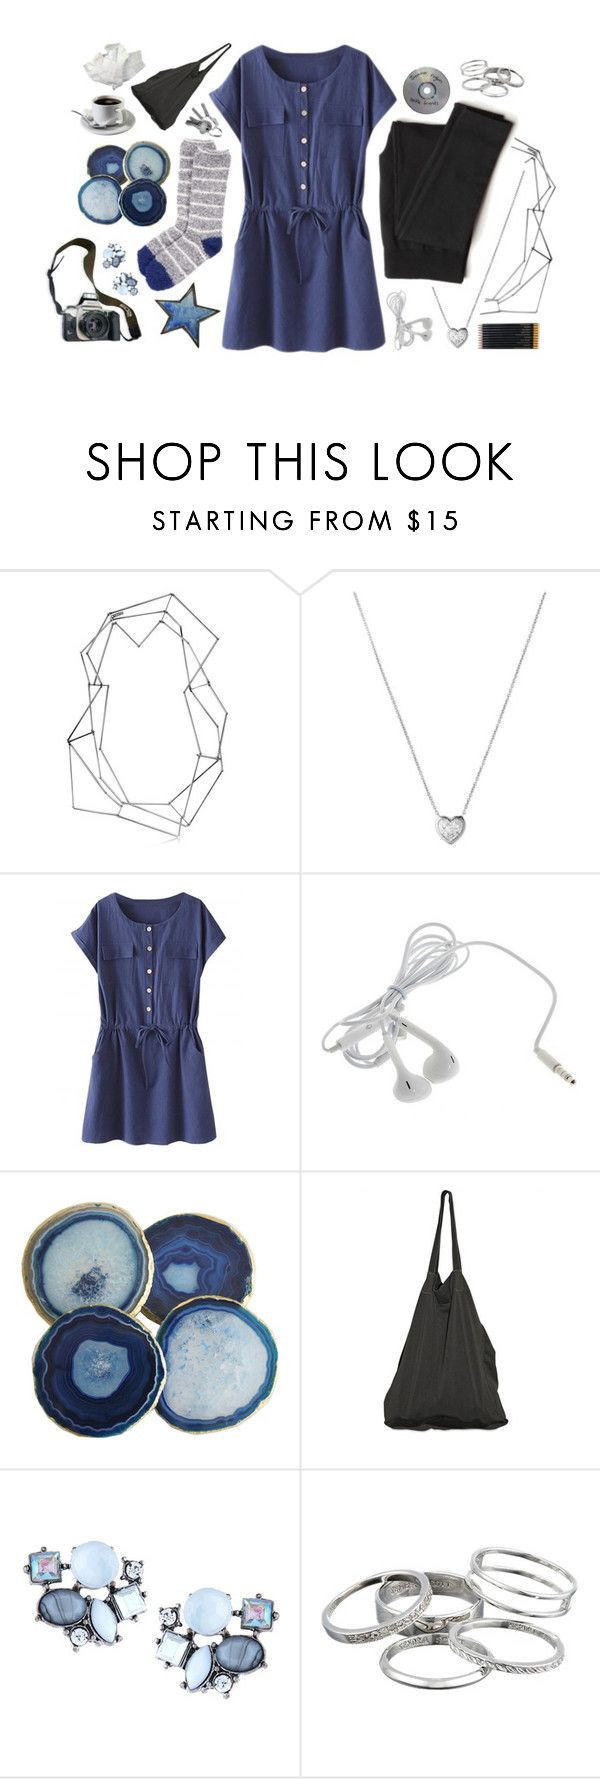 """where the moon is made of gold. {tag}"" by elle-of-roses ❤ liked on Polyvore featuring BANCI GIOIELLI, Links of London, Laneus, Eos, Lydell NYC, Kendra Scott, Sloane Stationery and ellefashion"